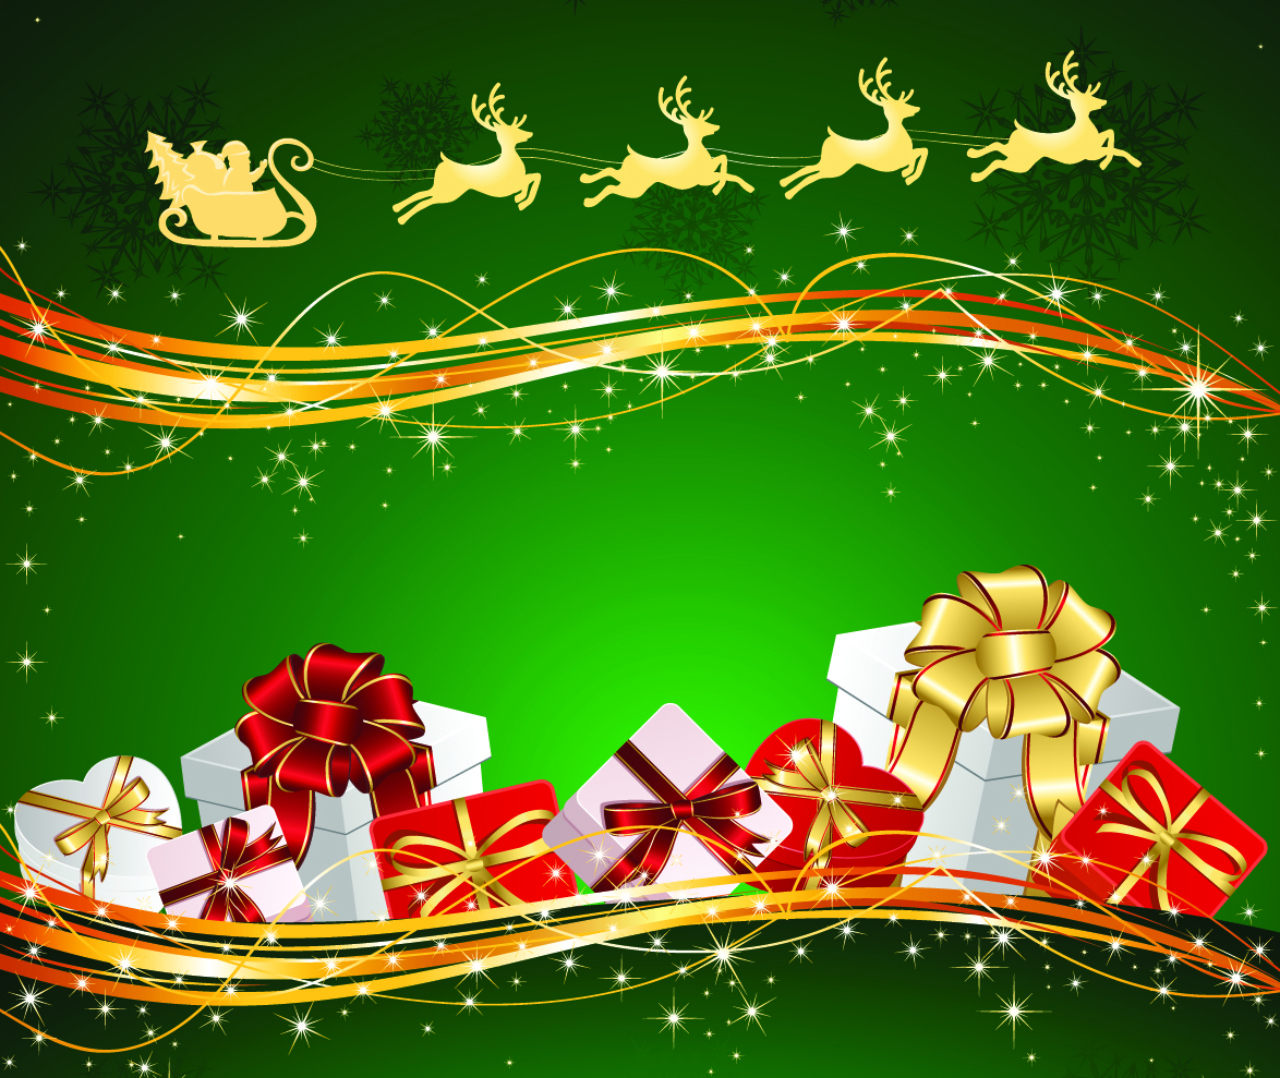 wallpapers christmas imagenes navidenos - photo #37